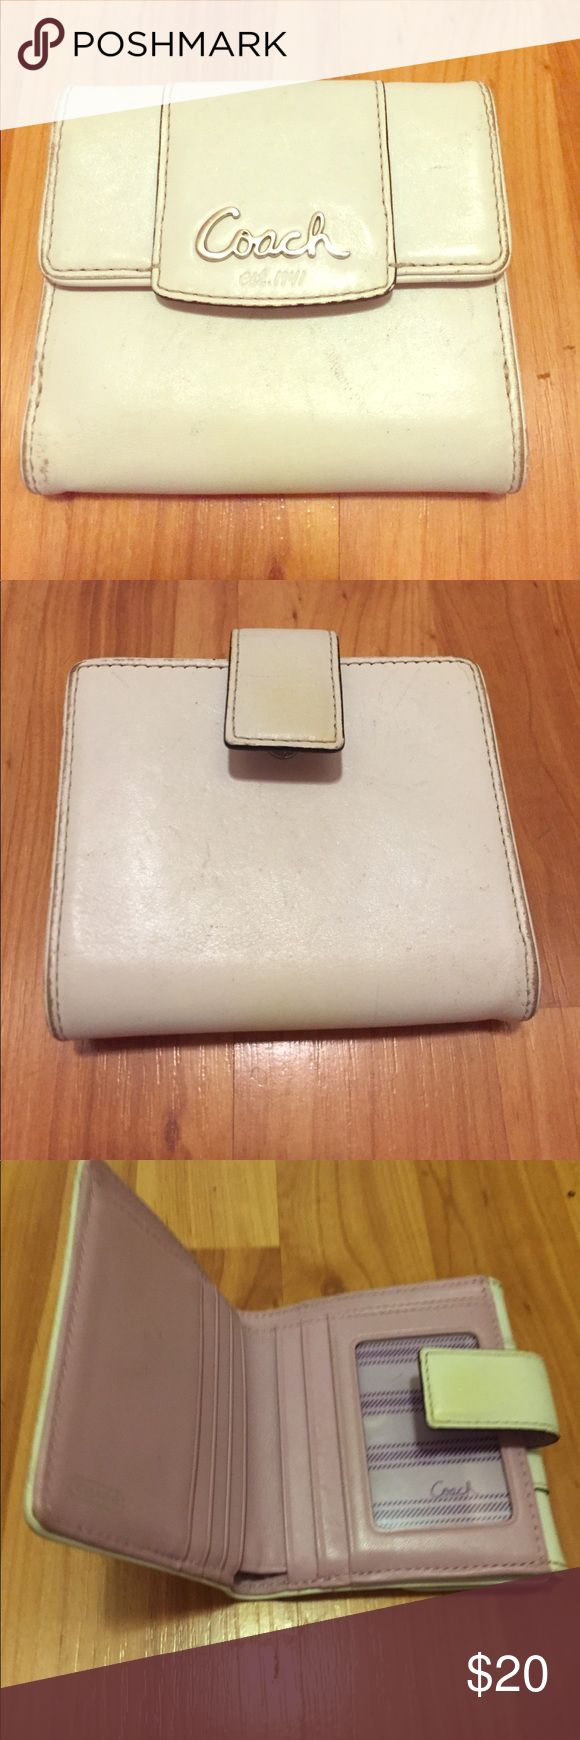 White Coach Women's Wallet White Coach women's wallet with purple interior. It's used and has a few scratches on the outside. A part of the clasp is also discolored. But the inside is in great shape. Make an offer... price is negotiable. Coach Bags Wallets